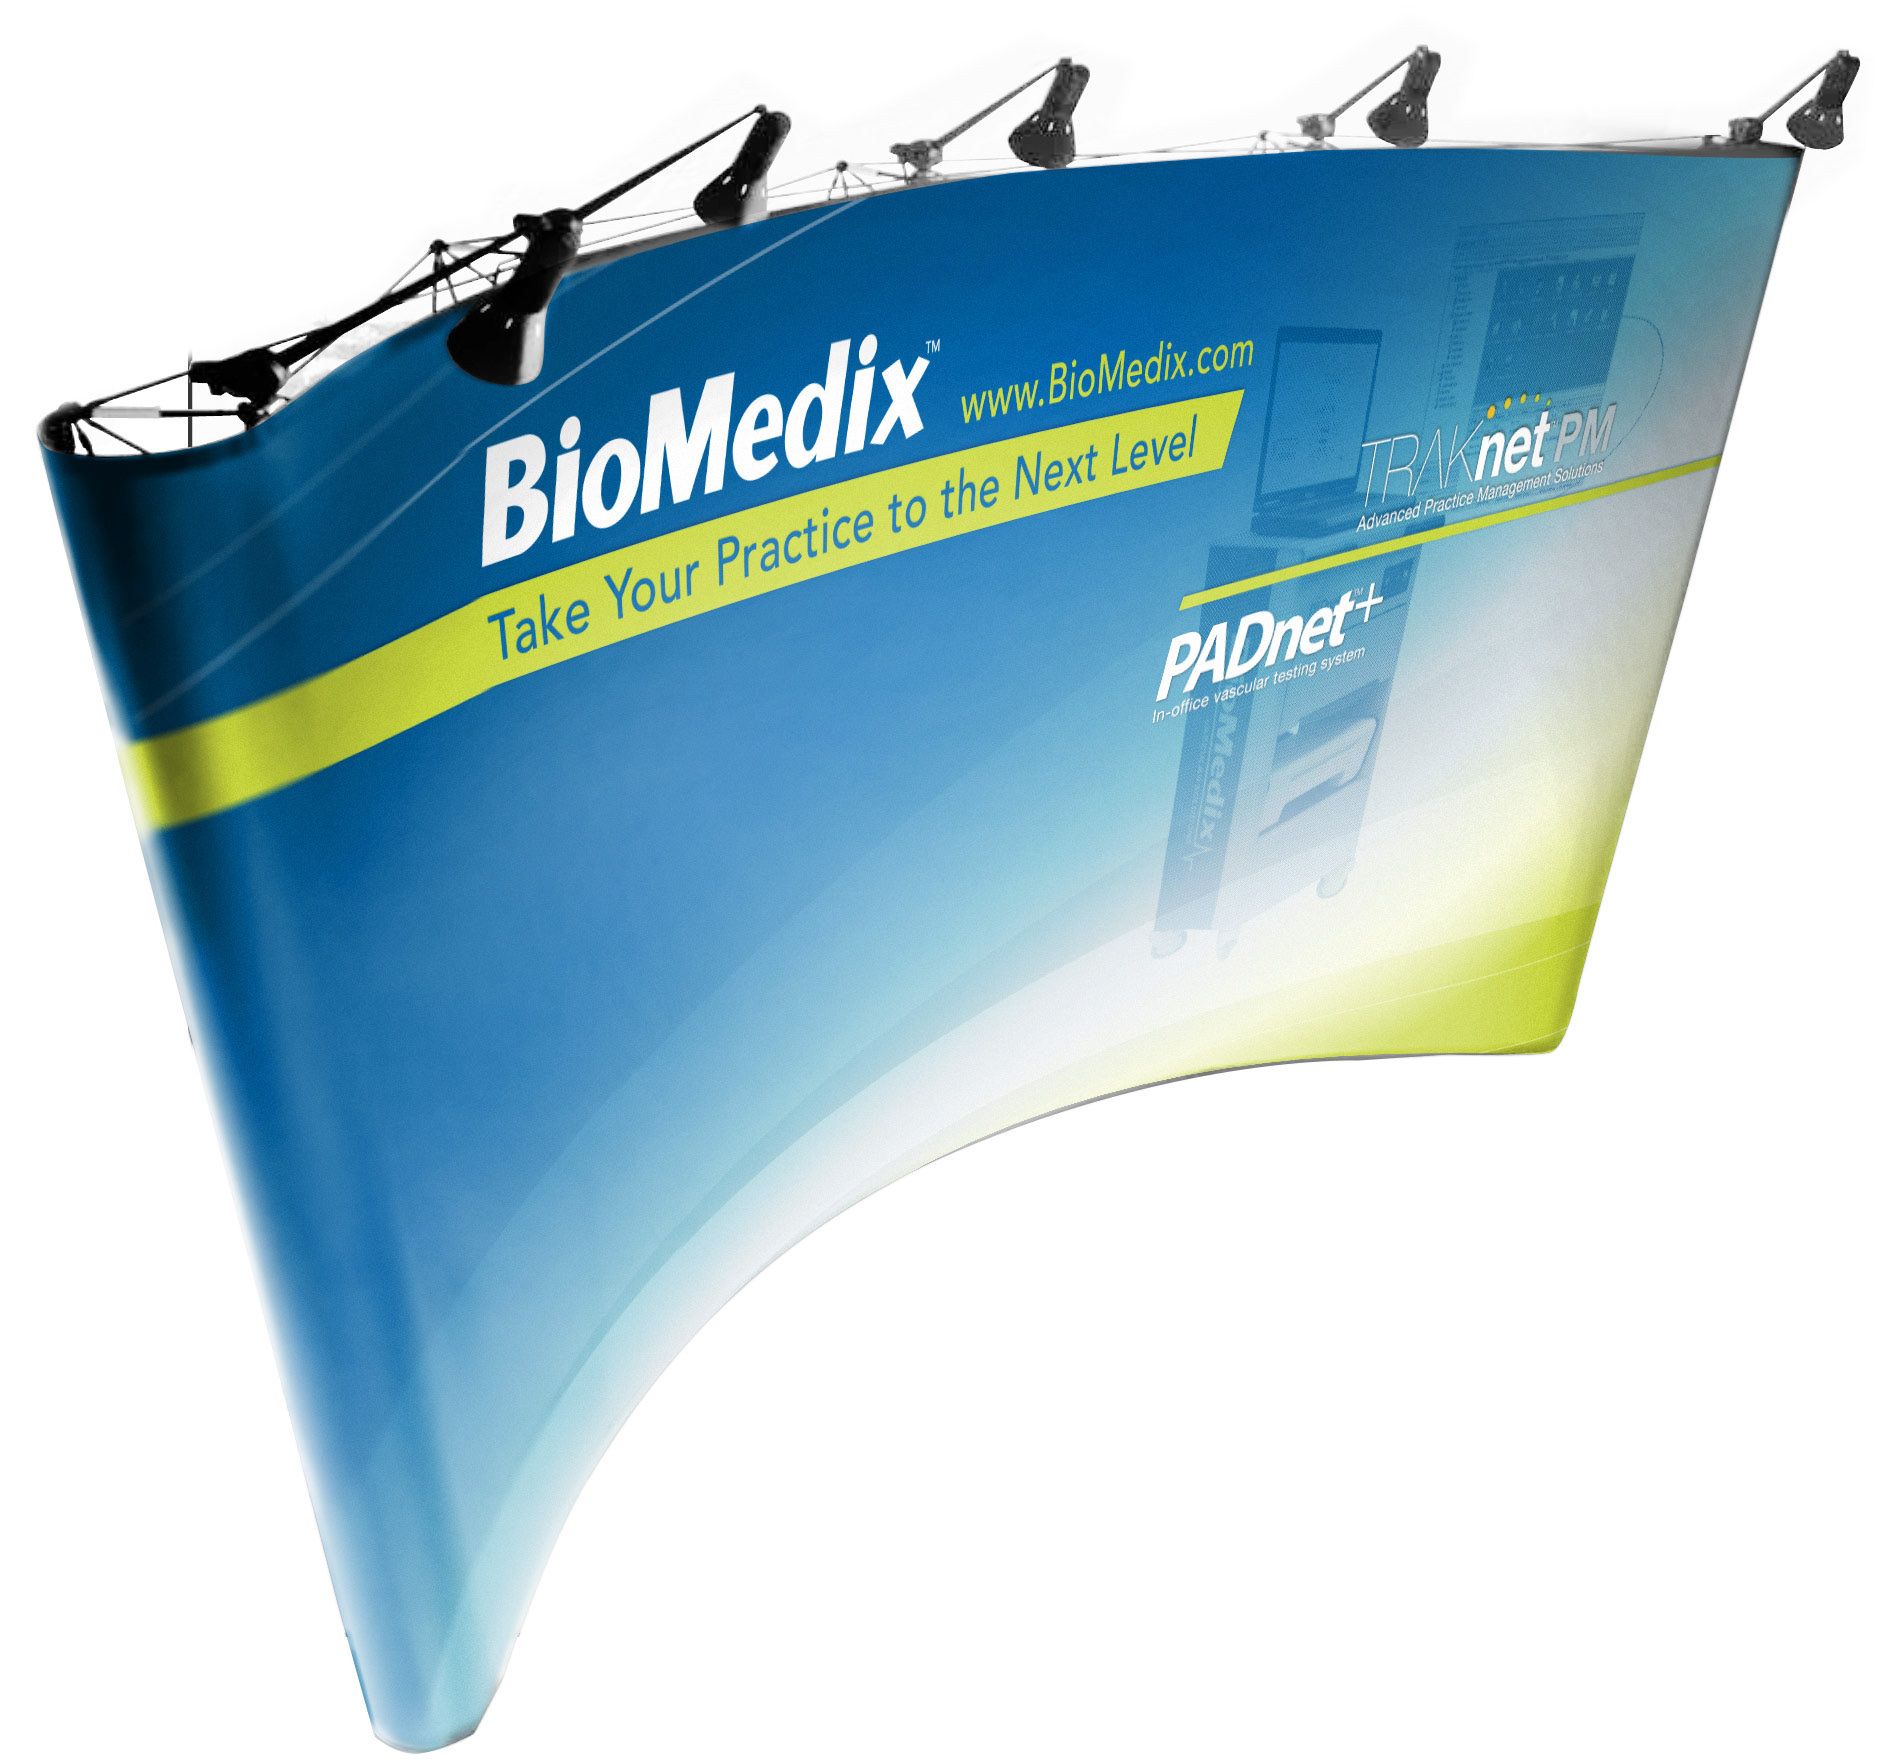 Large Display: BioMedix Collaborative Solutions